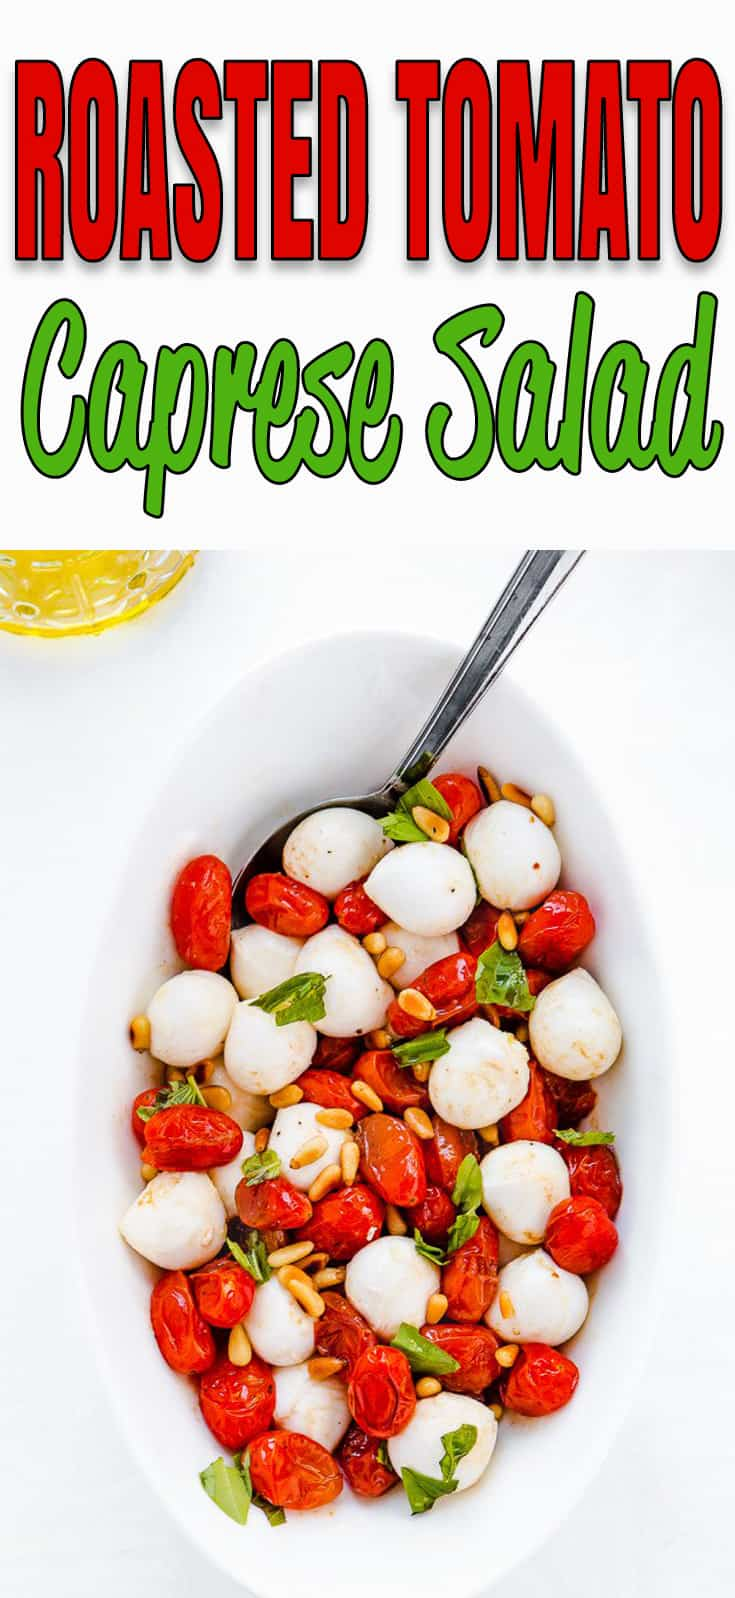 Roasted Tomato Caprese Salad  - #recipe #salad #caprese #roasted #tomato